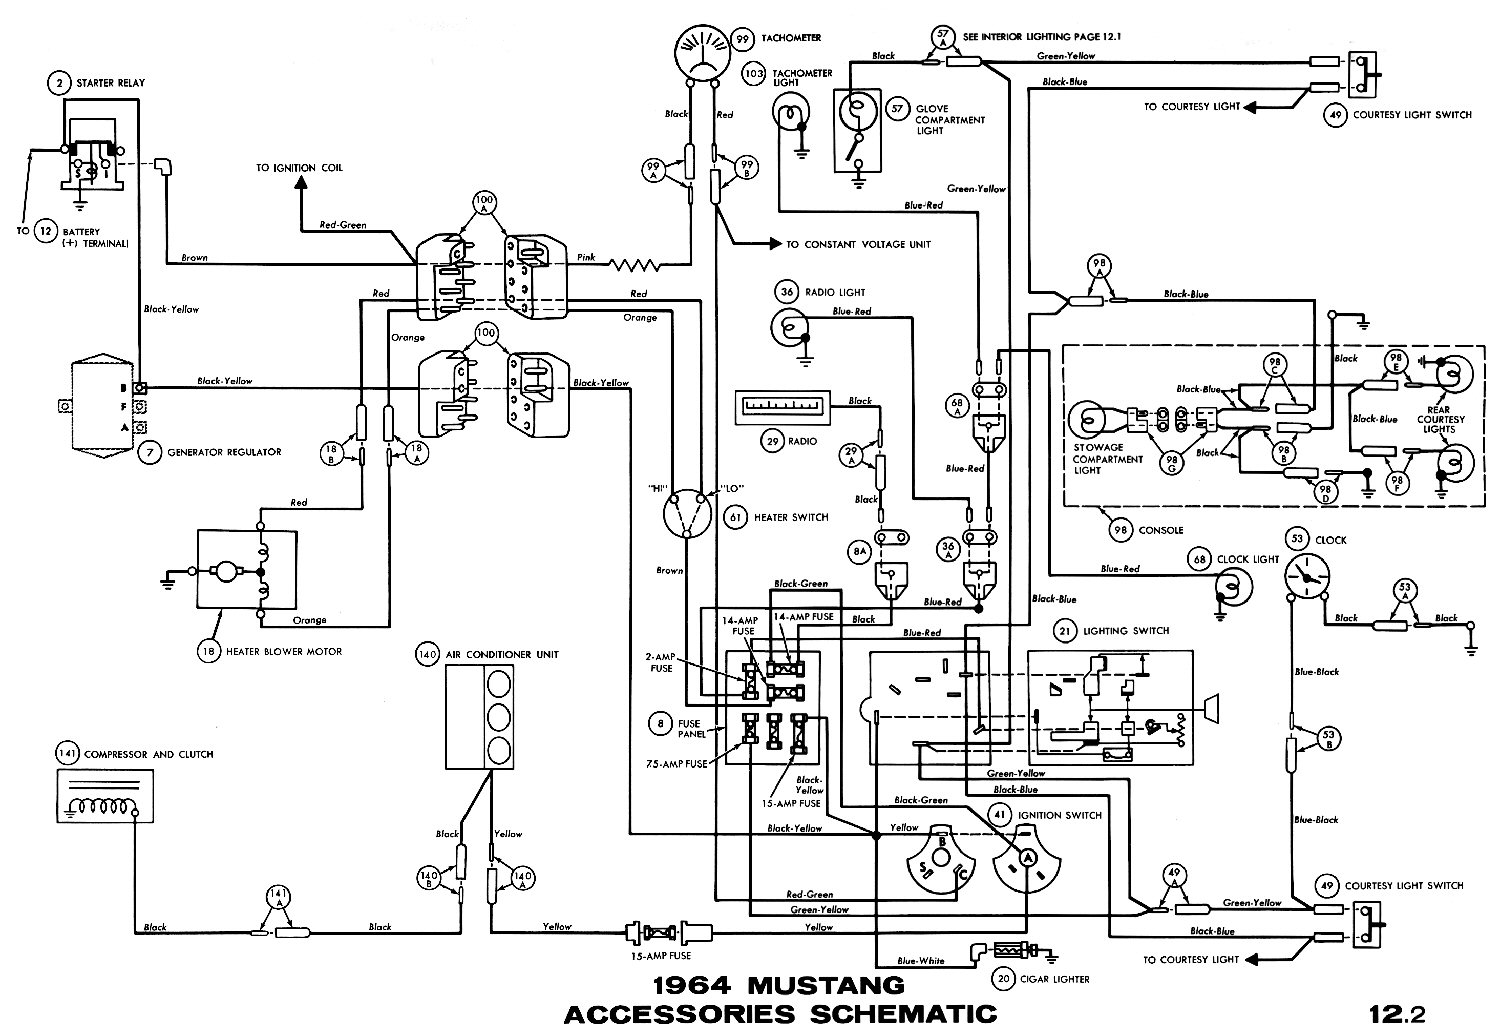 1964 Mustang Wiring Diagrams Average Joe Restoration Auto Manual Switch Diagram Air Conditioner